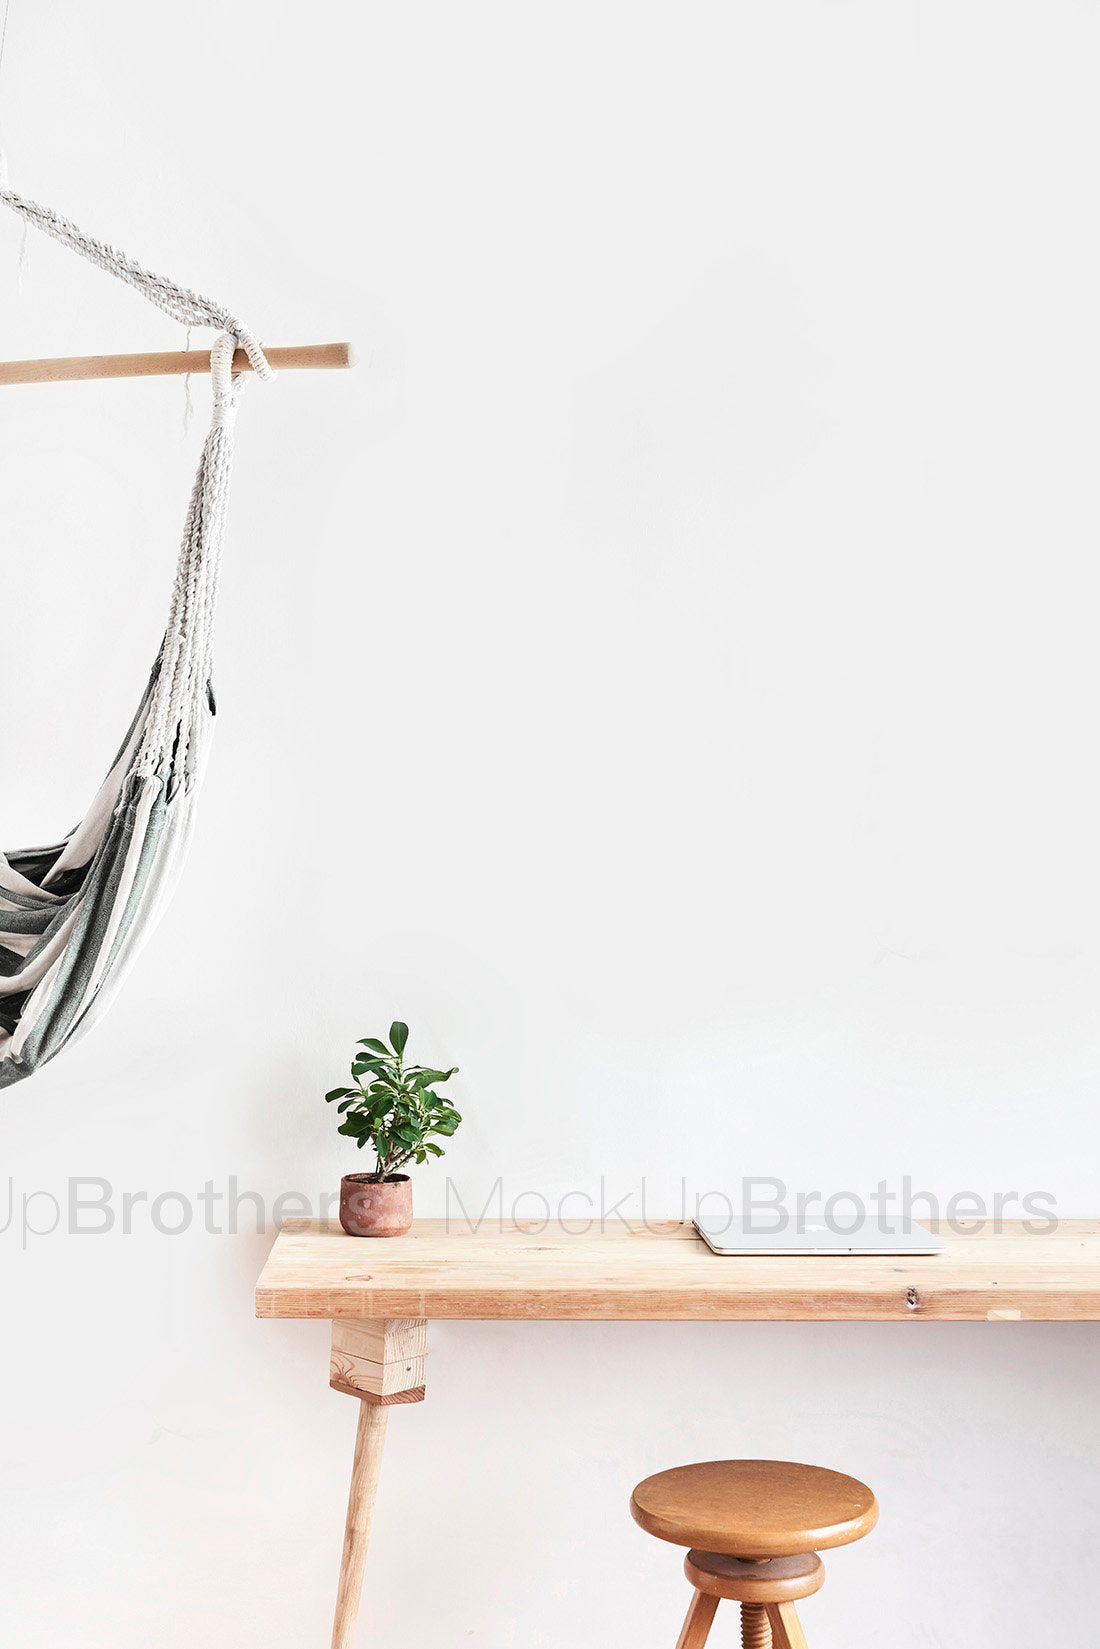 Nordic interior design by mockup brothers